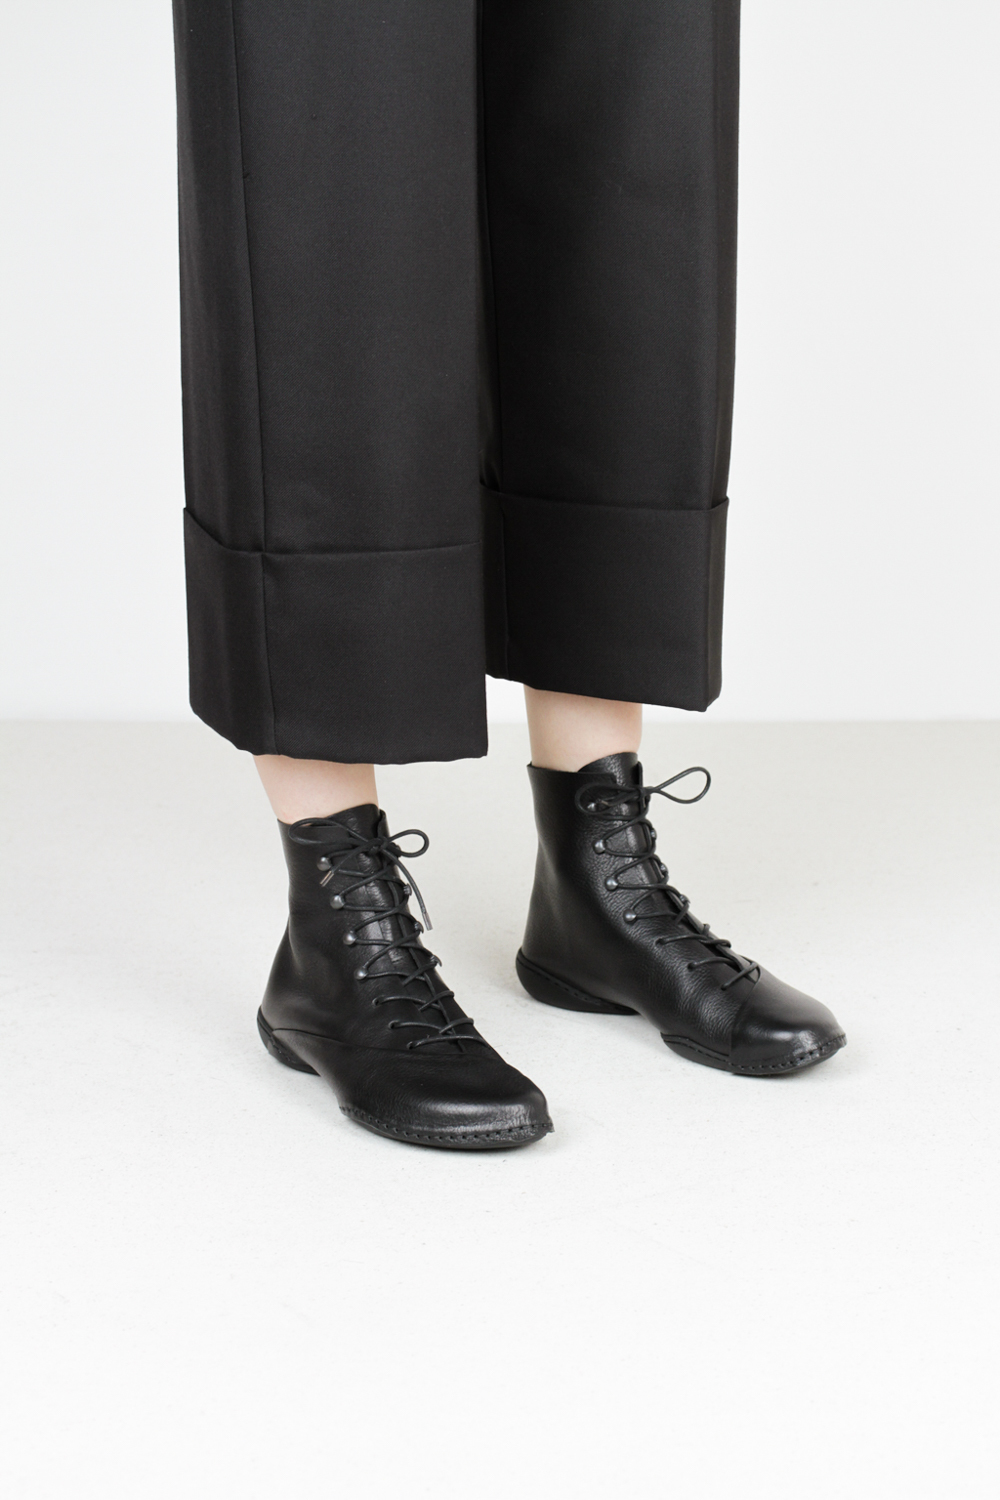 Trippen oyster f waw blk leather shoes